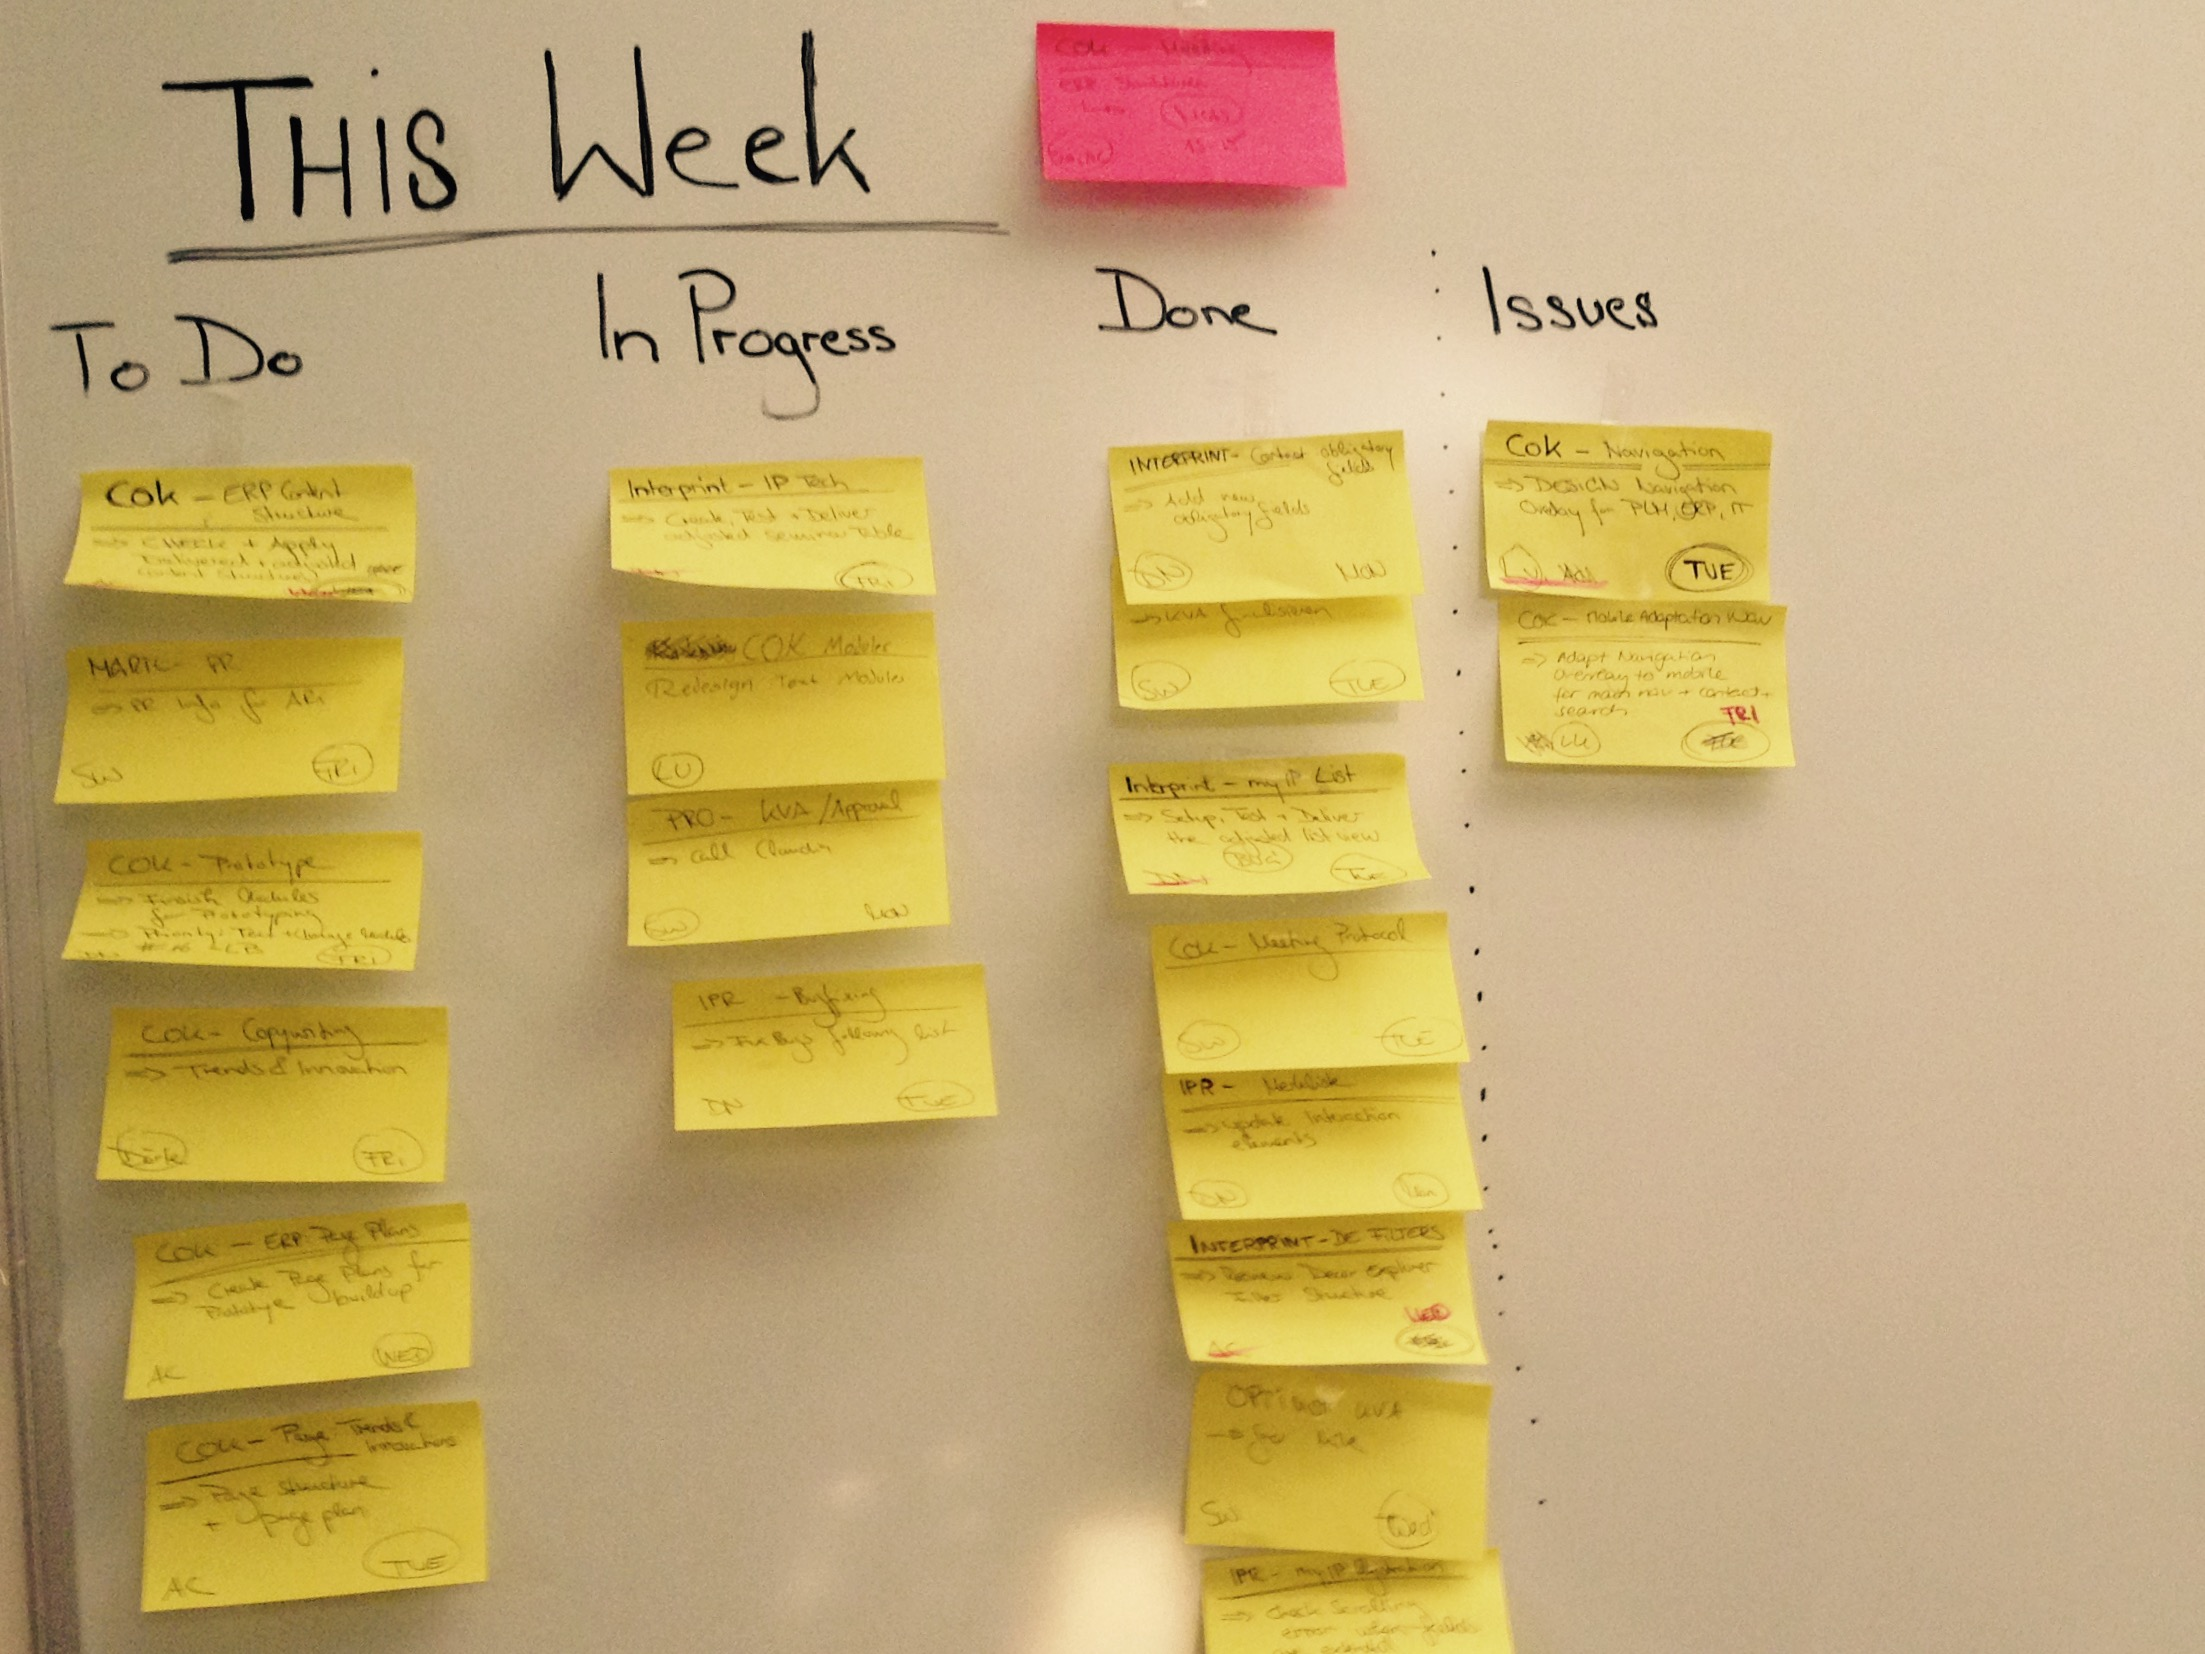 SCRUM MASTER Workshop - and what I got out of it